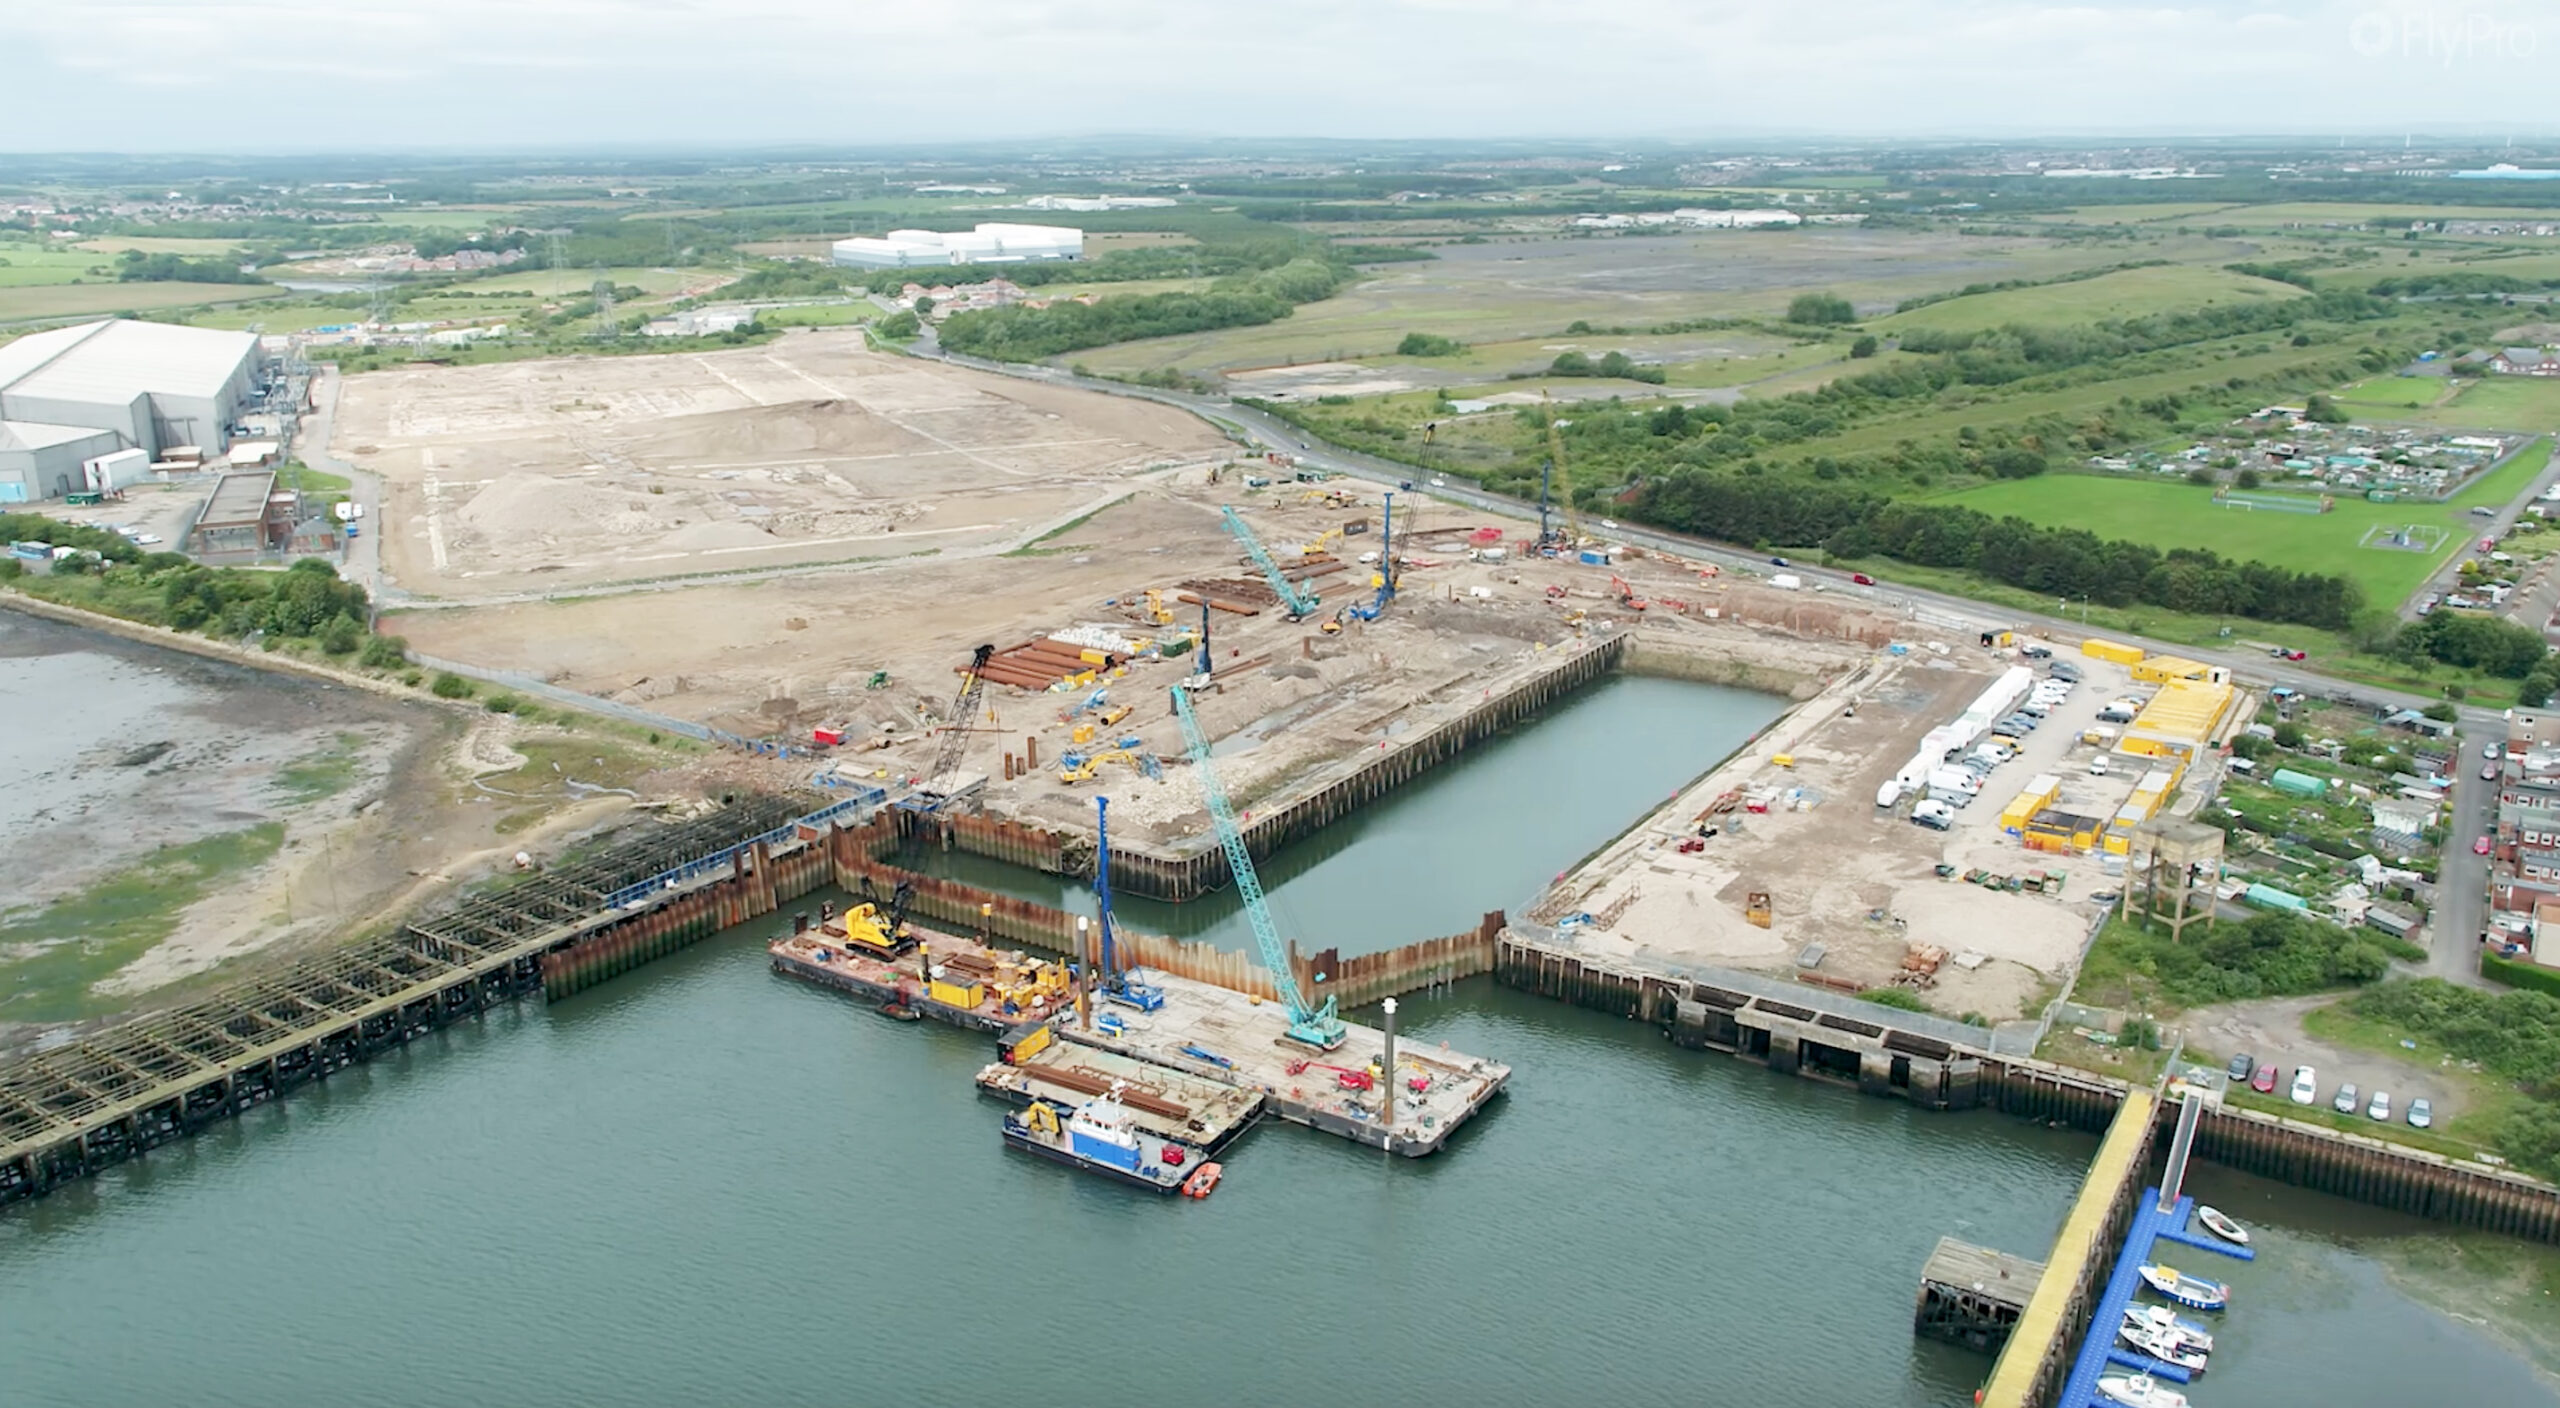 Energy Central looks to the future with bid for offshore wind industry funding